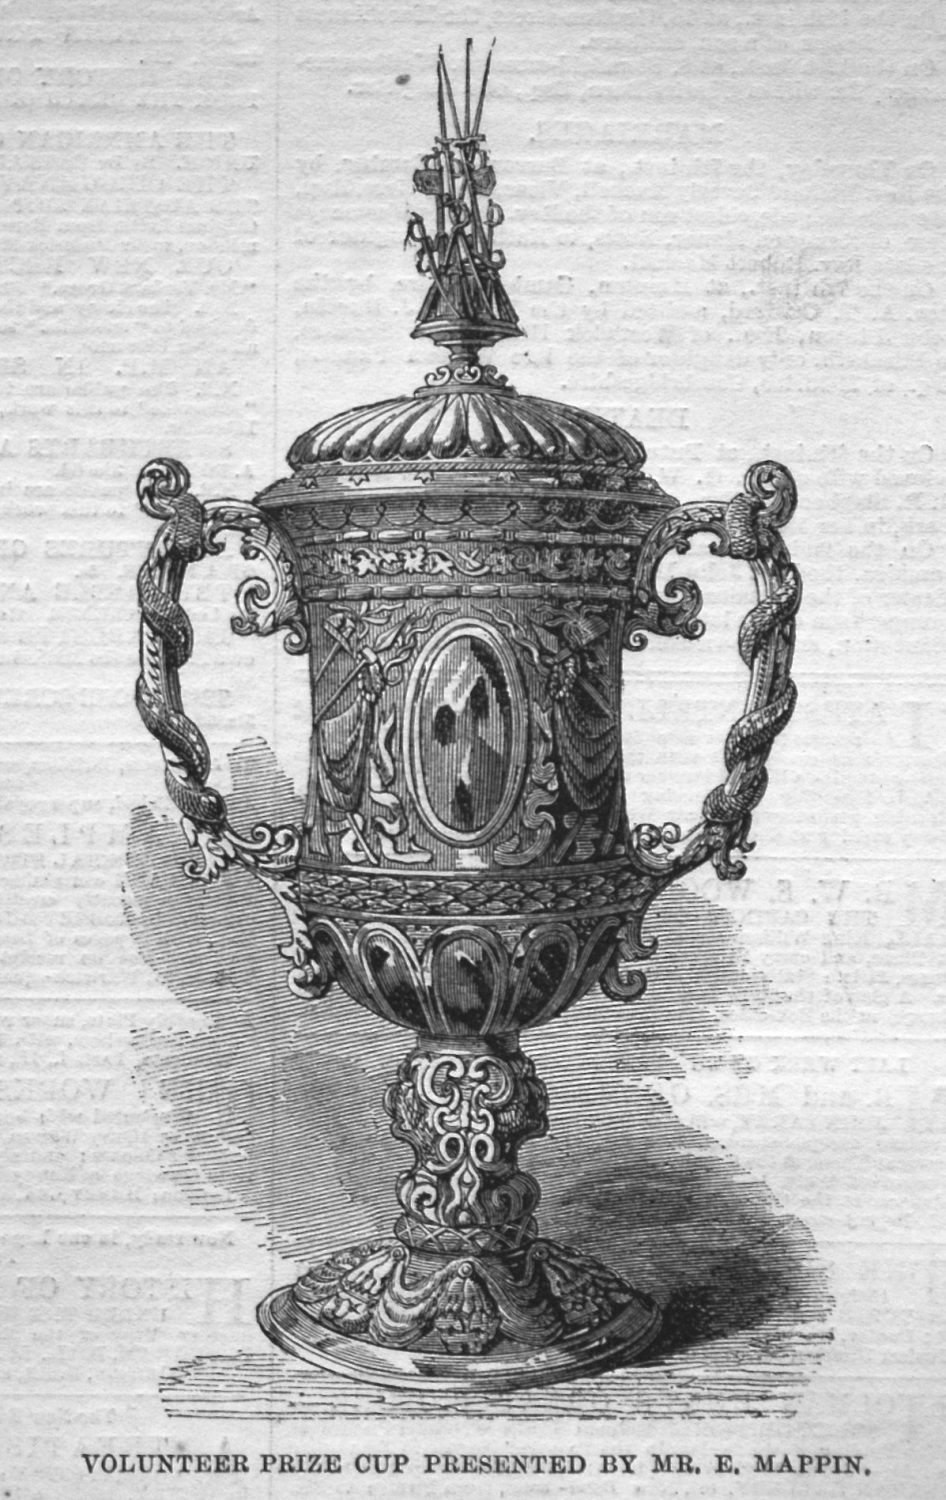 Volunteer Prize Cup Presented by Mr. E. Mappin. 1855